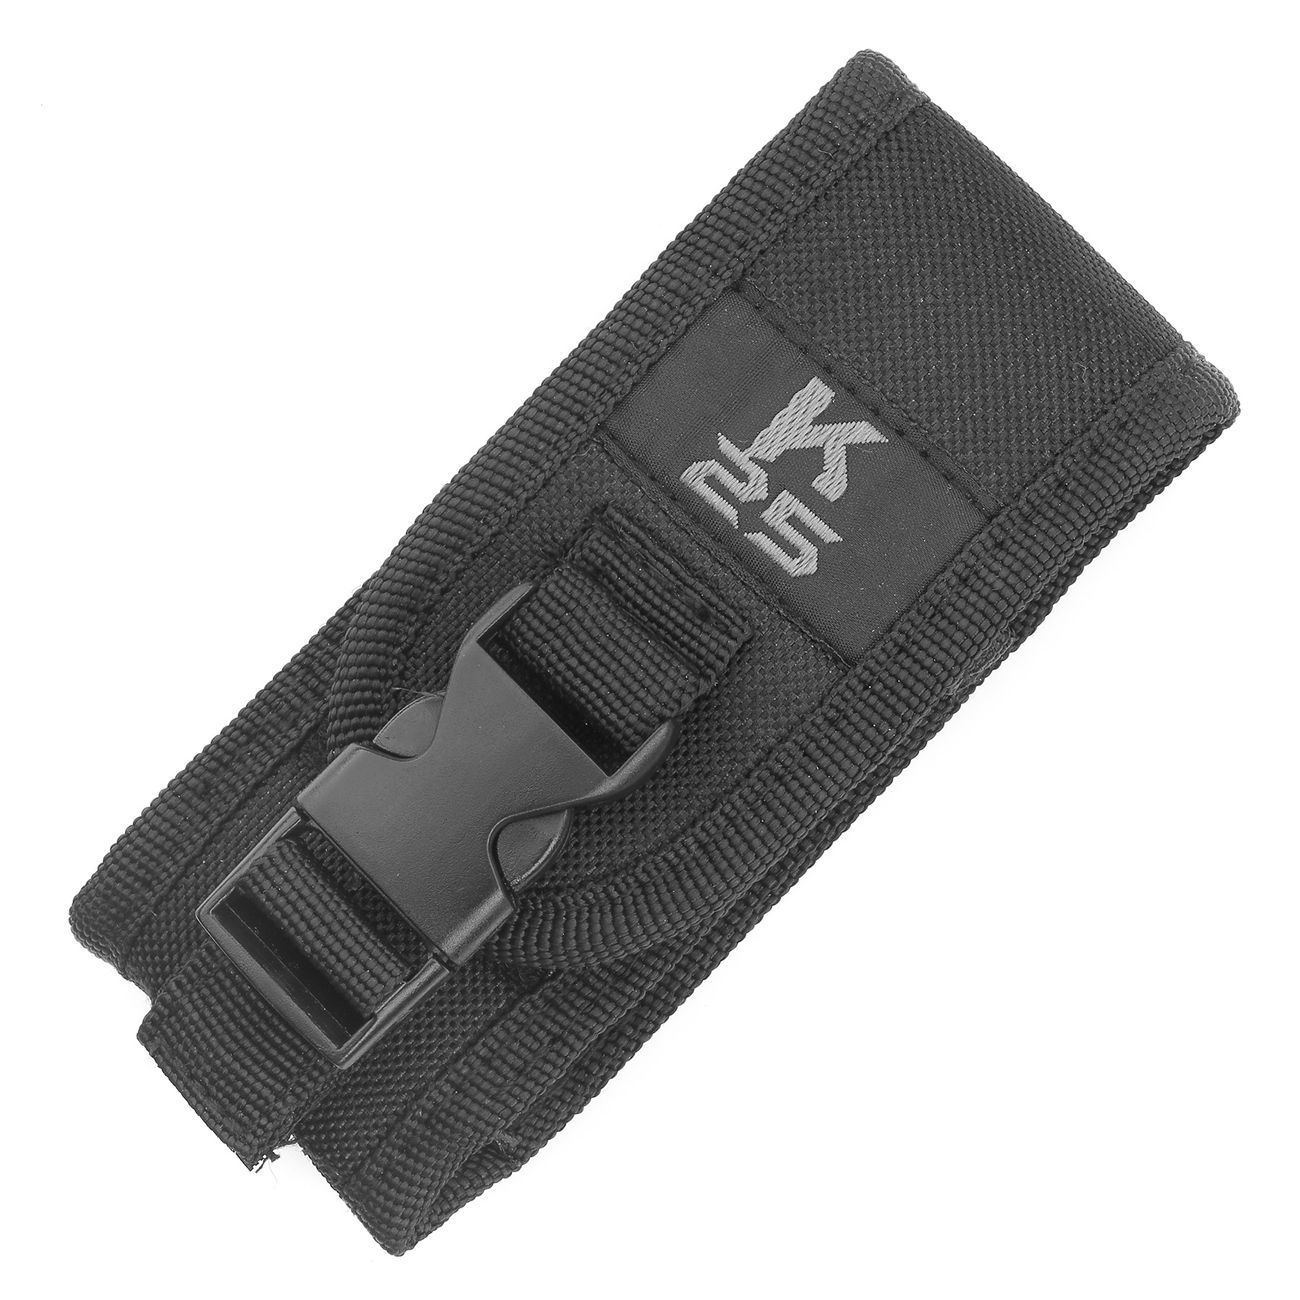 K25 Einhandmesser Tactical Pocket Knife grau 7